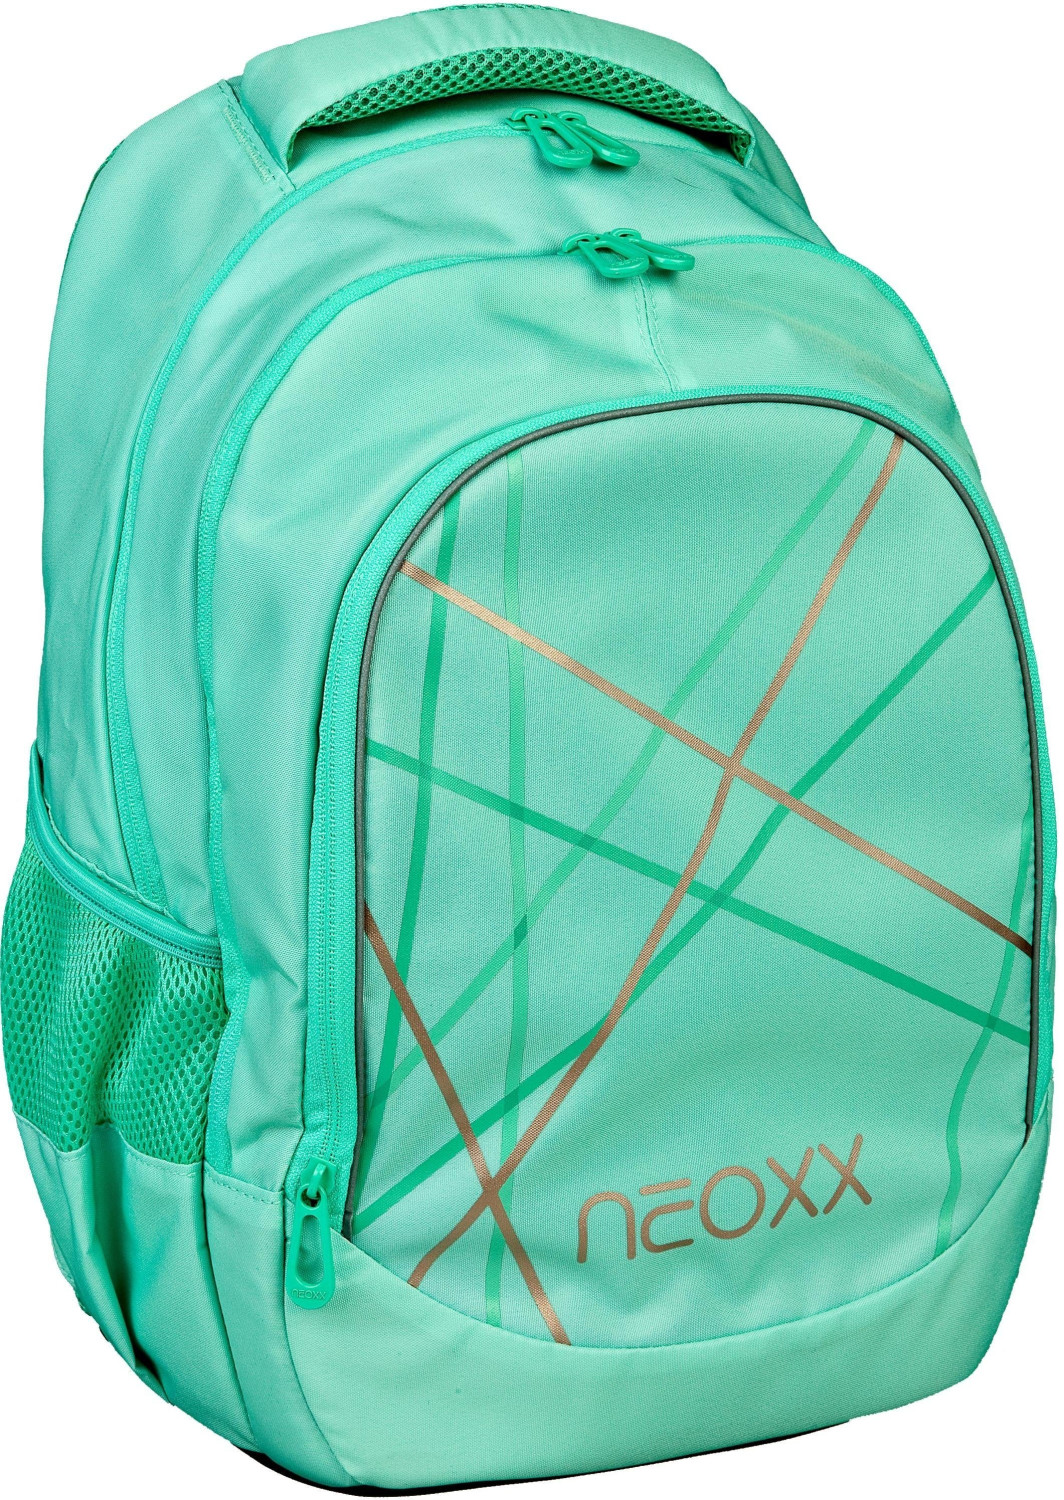 neoxx Fly Mint to be